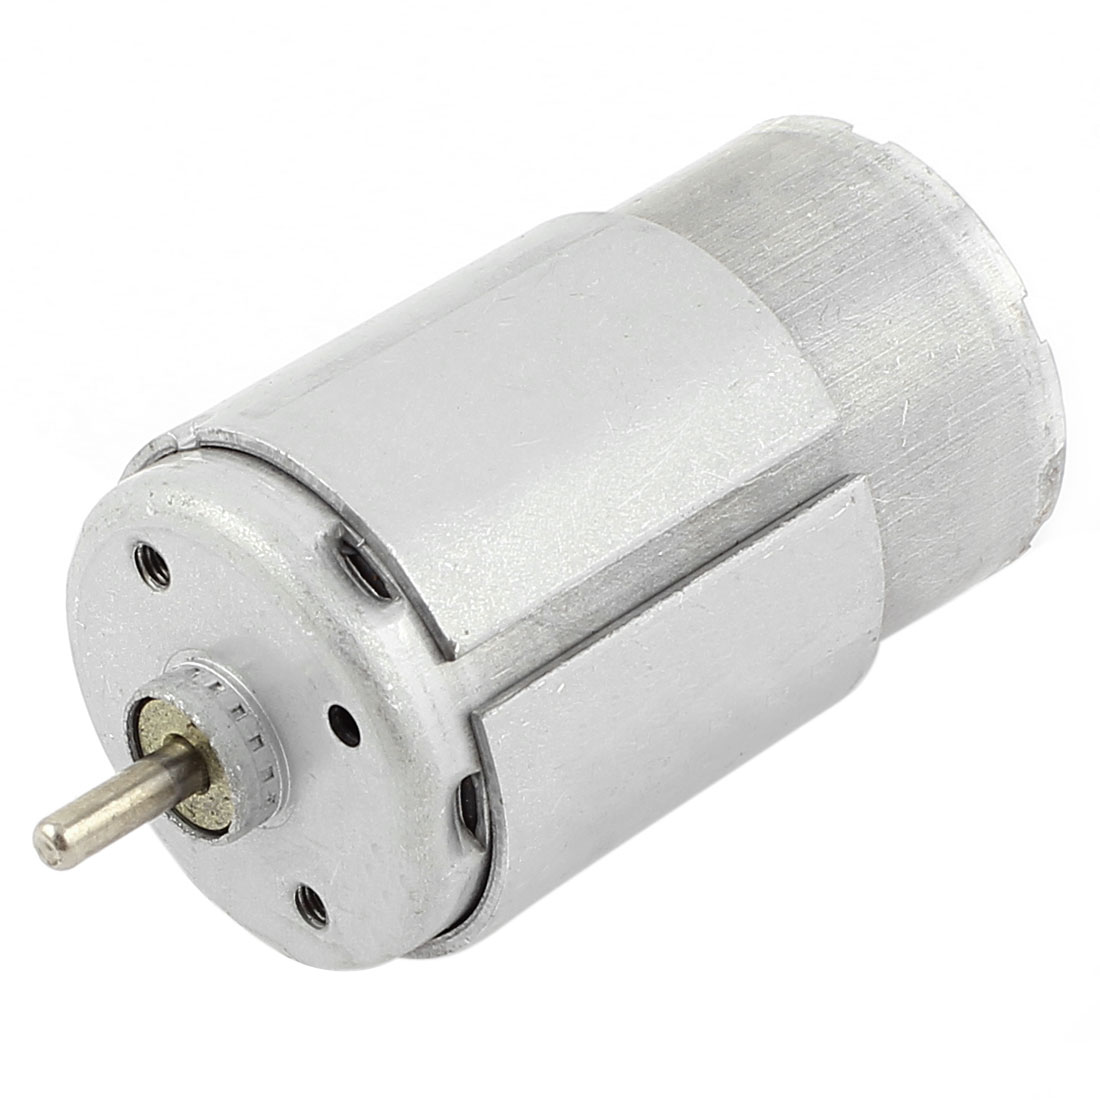 DC 10V 2700RPM Output Speed High Torque Wind Power Generator Motor